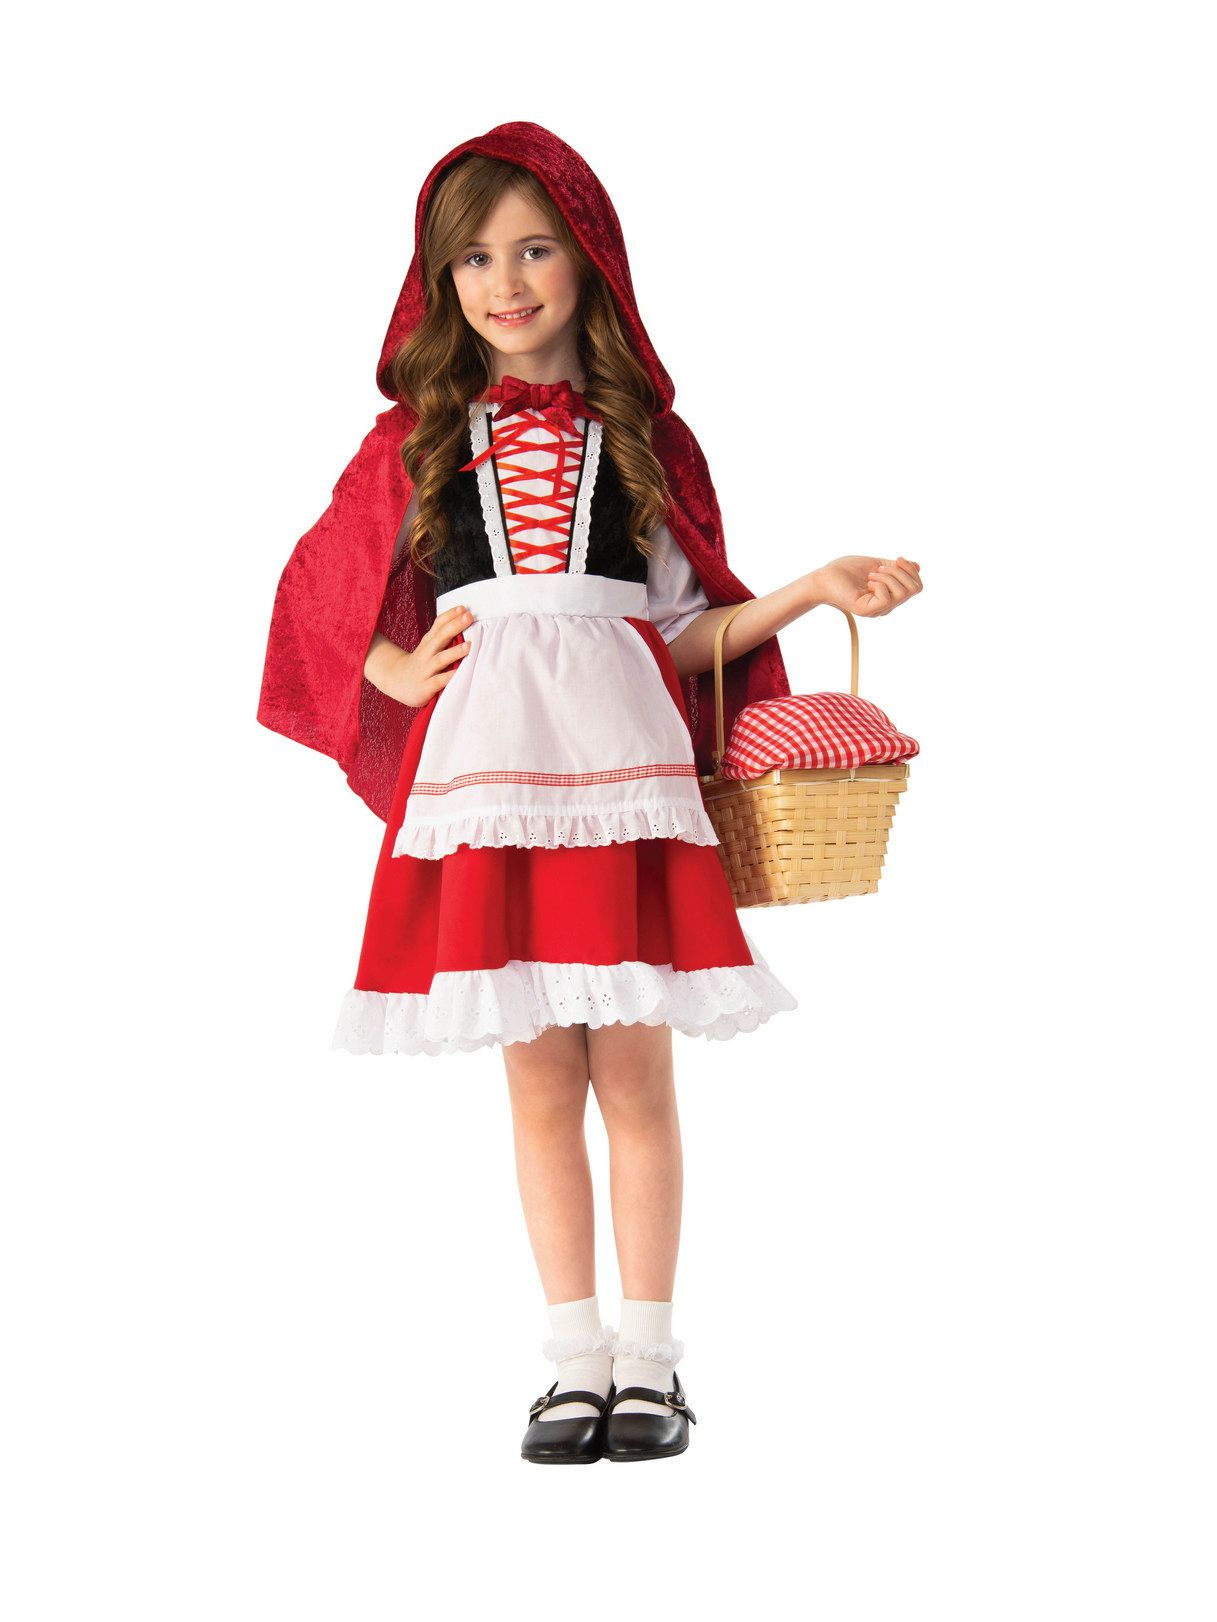 Original Costumes For Kids.Story Book Little Red Riding Hood Costume Kids 2018